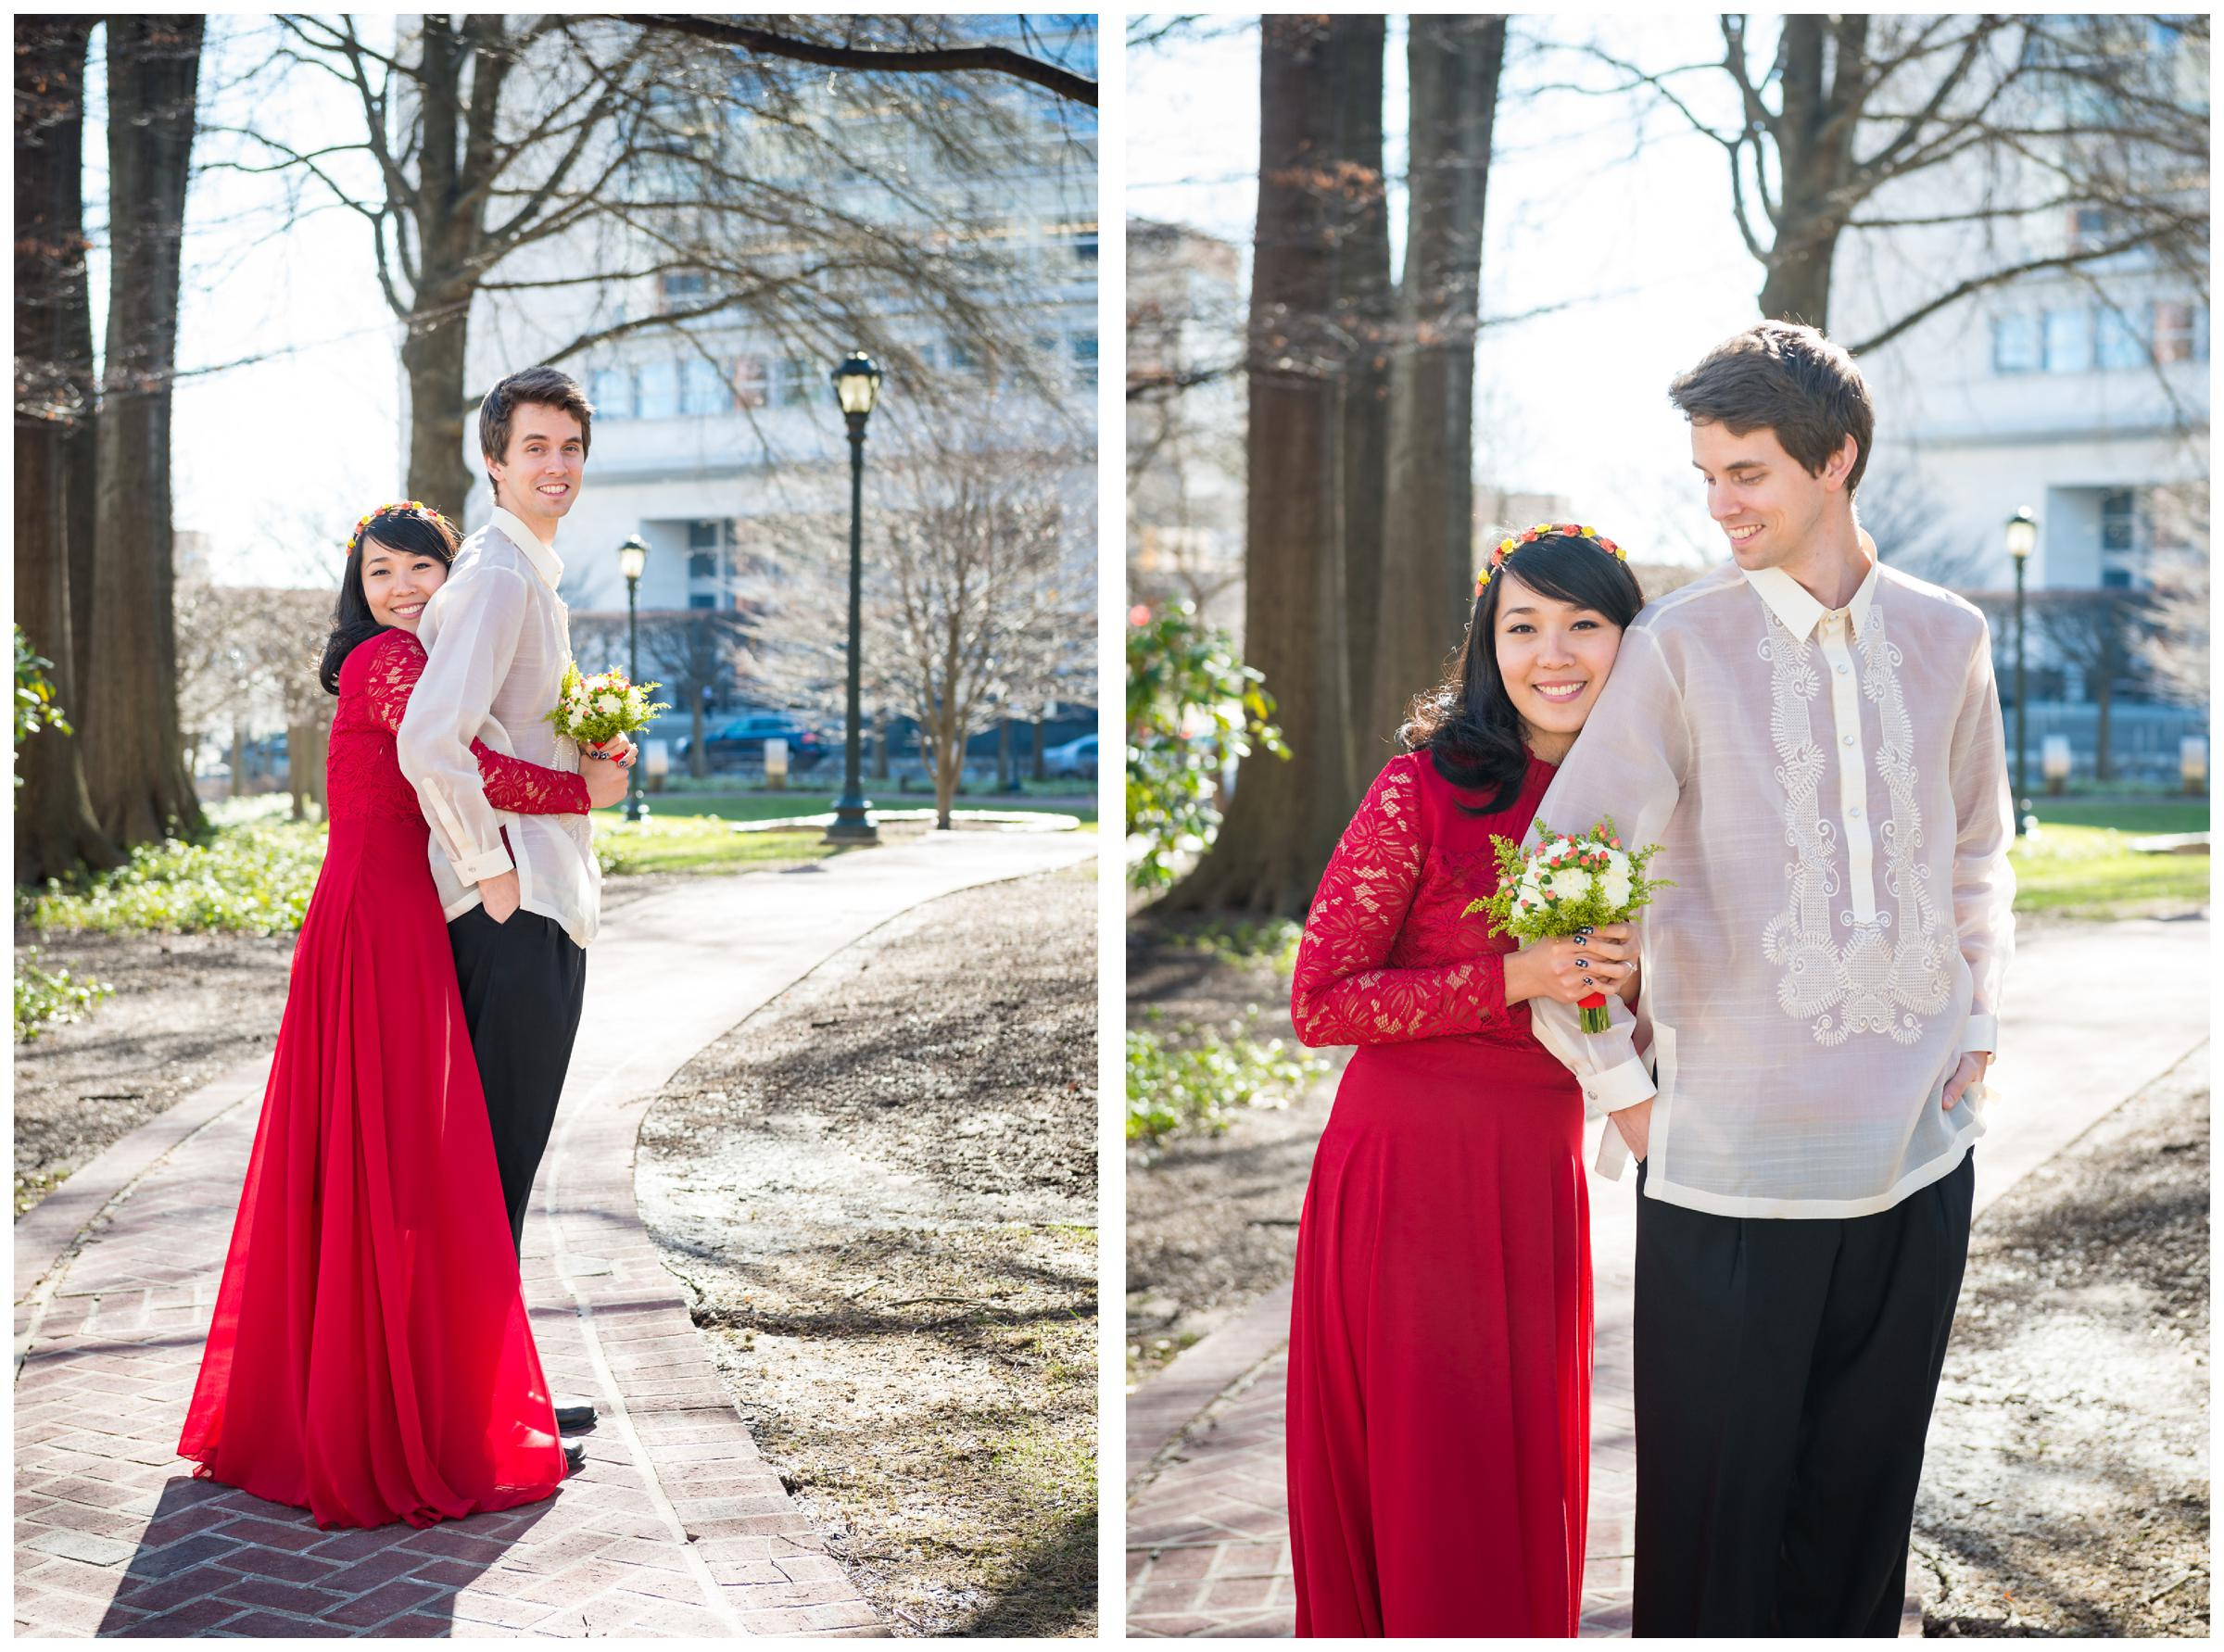 bride and groom wearing Filipino wedding clothes and red gown